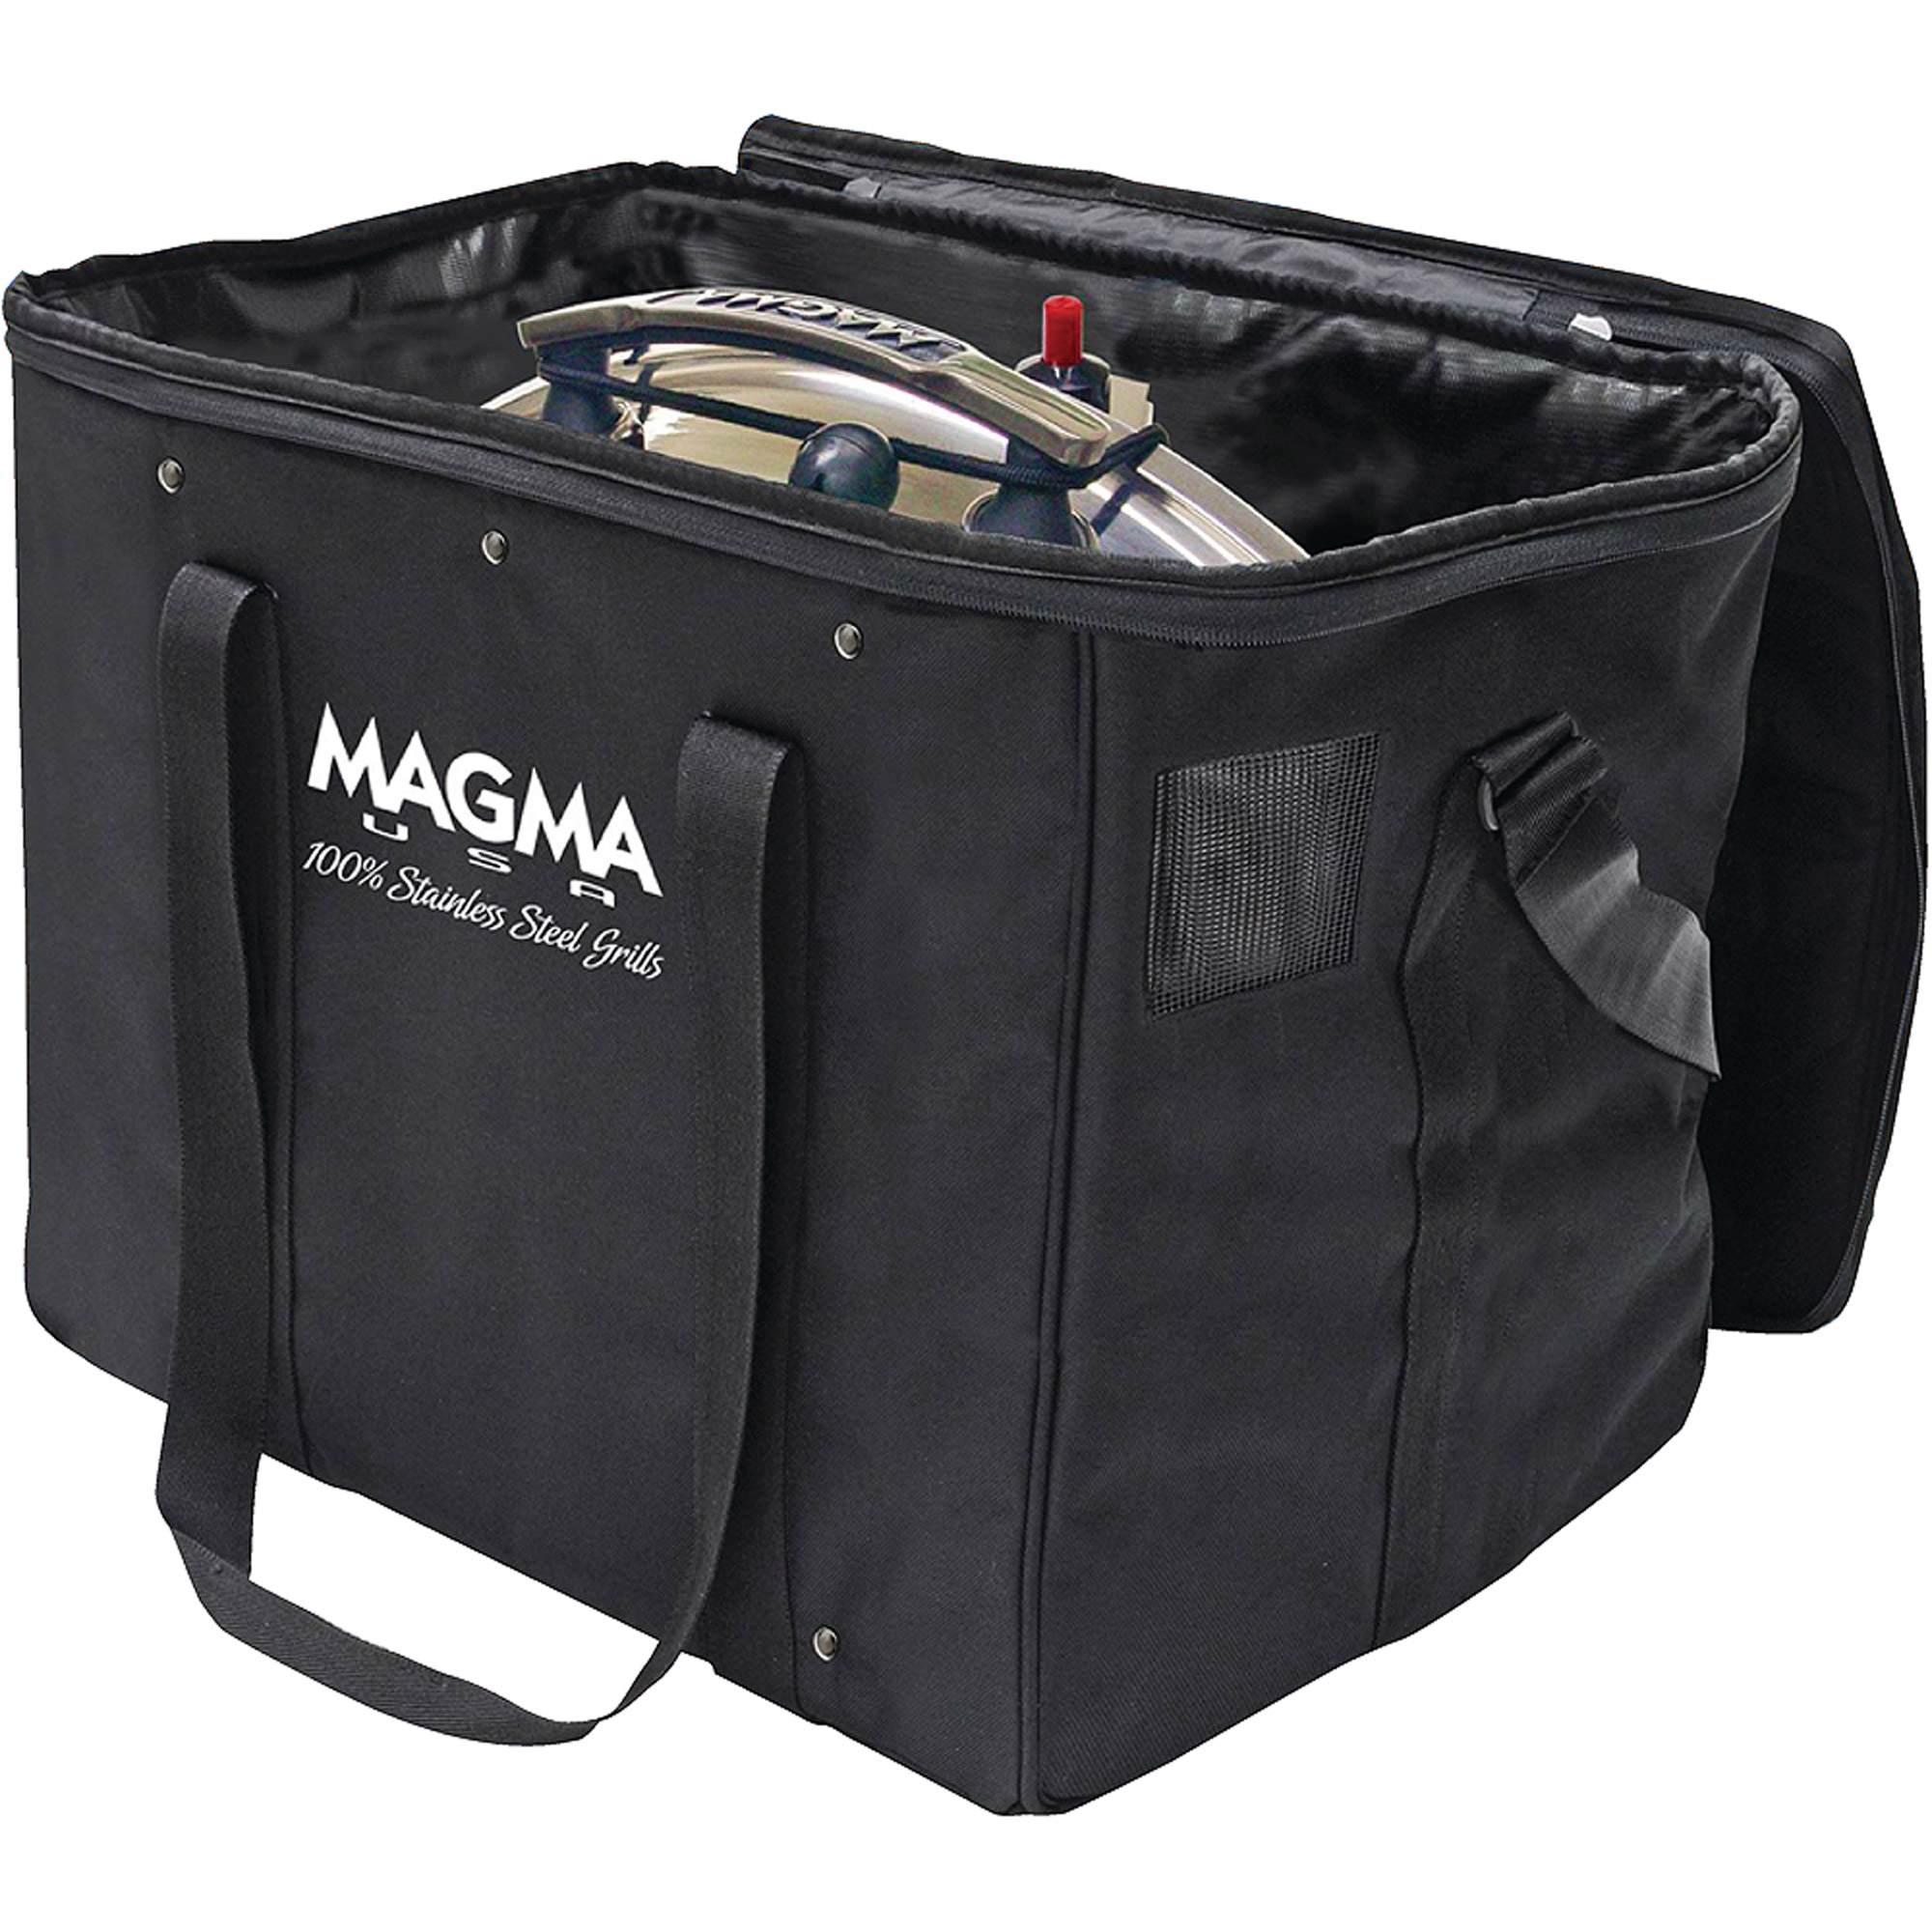 Magma Padded Grill and Accessory Carrying/Storage Case